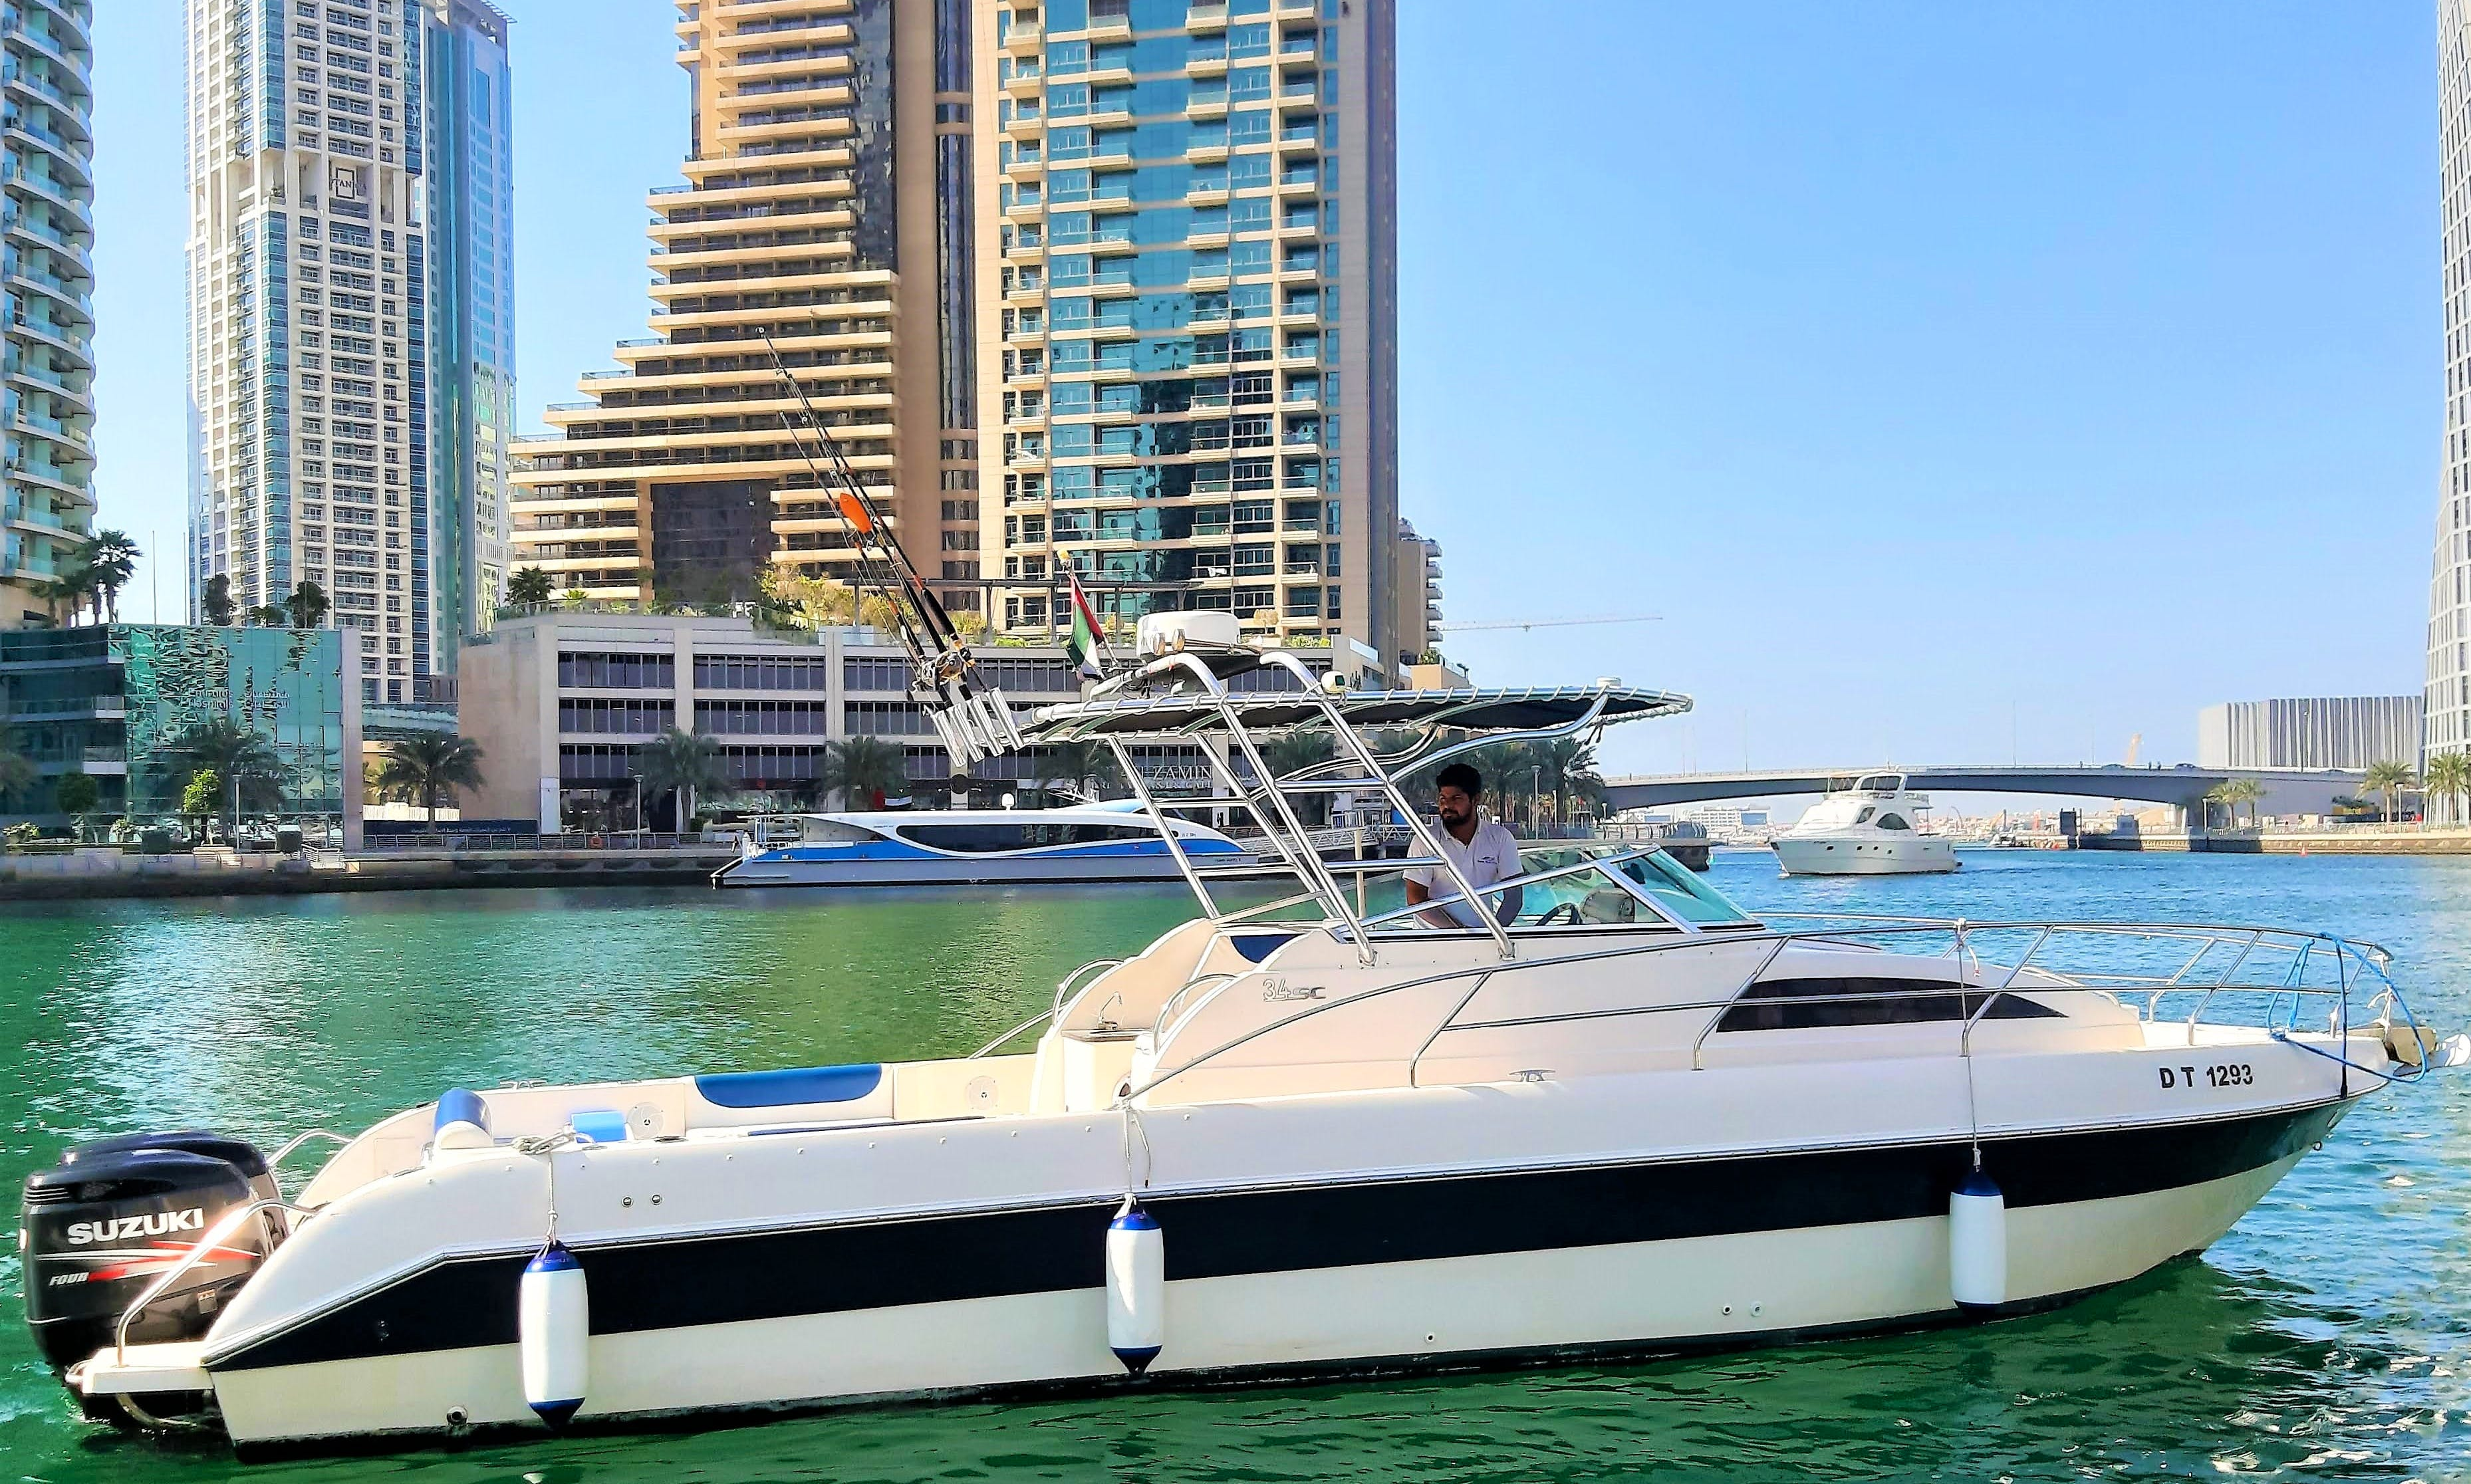 Private Boat Tour / Burj Al Arab / Atlantis / Dubai Palm Tour / Dubai Boat Tour